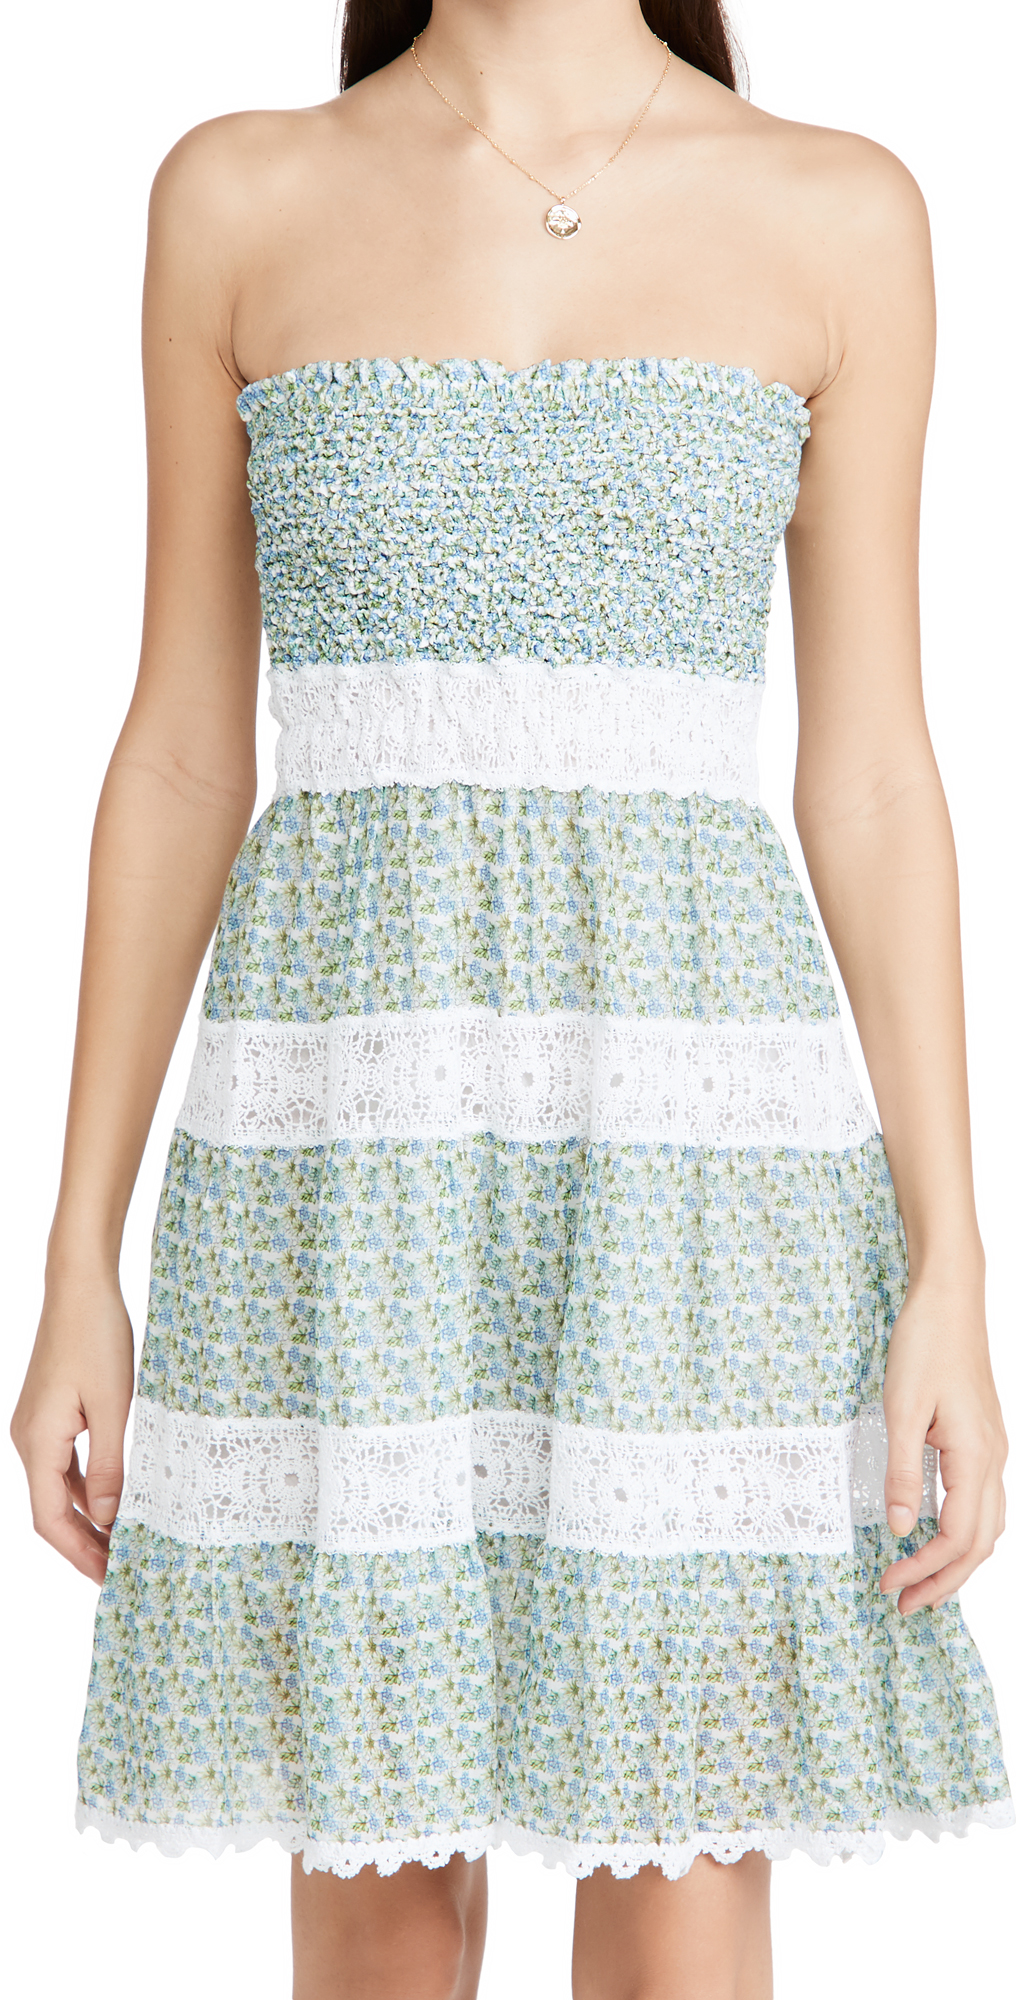 Temptation Positano Ischia Ruched Floral Dress